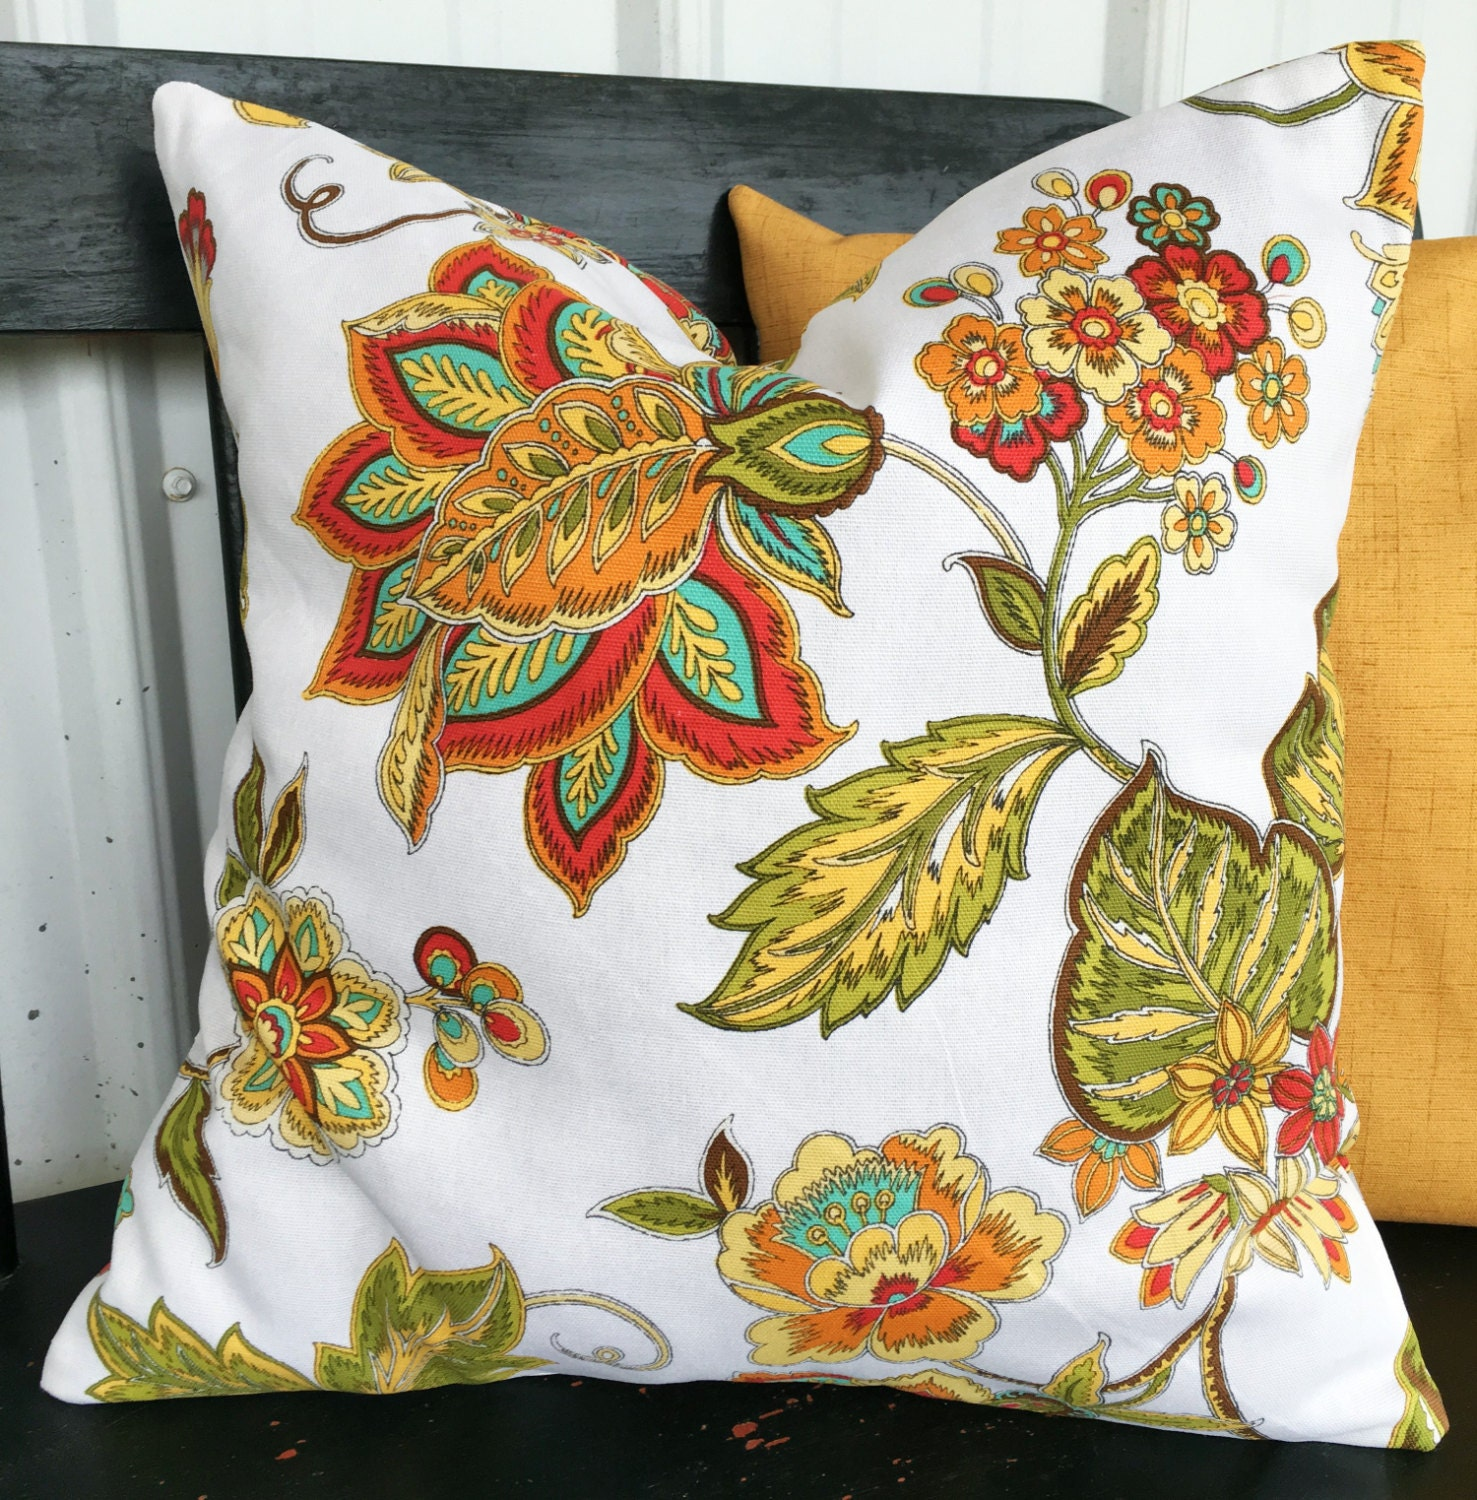 Modern Floral Pillows : Pillow cover 18x18 living room pillows in modern floral